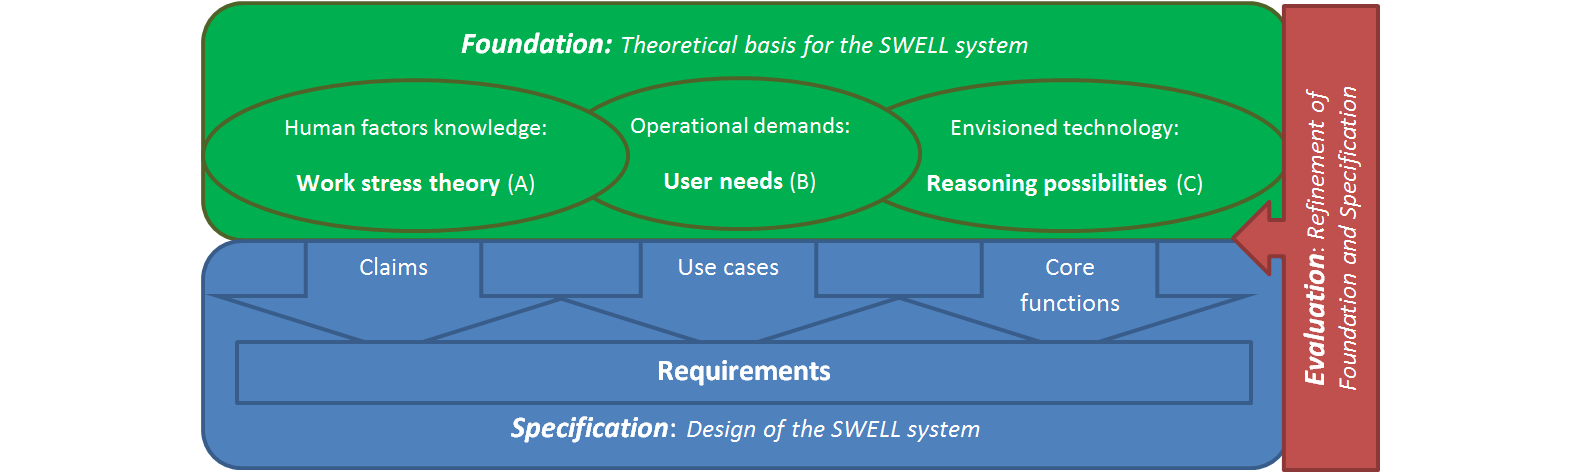 Jmu Deriving Requirements For Pervasive Well Being Technology From